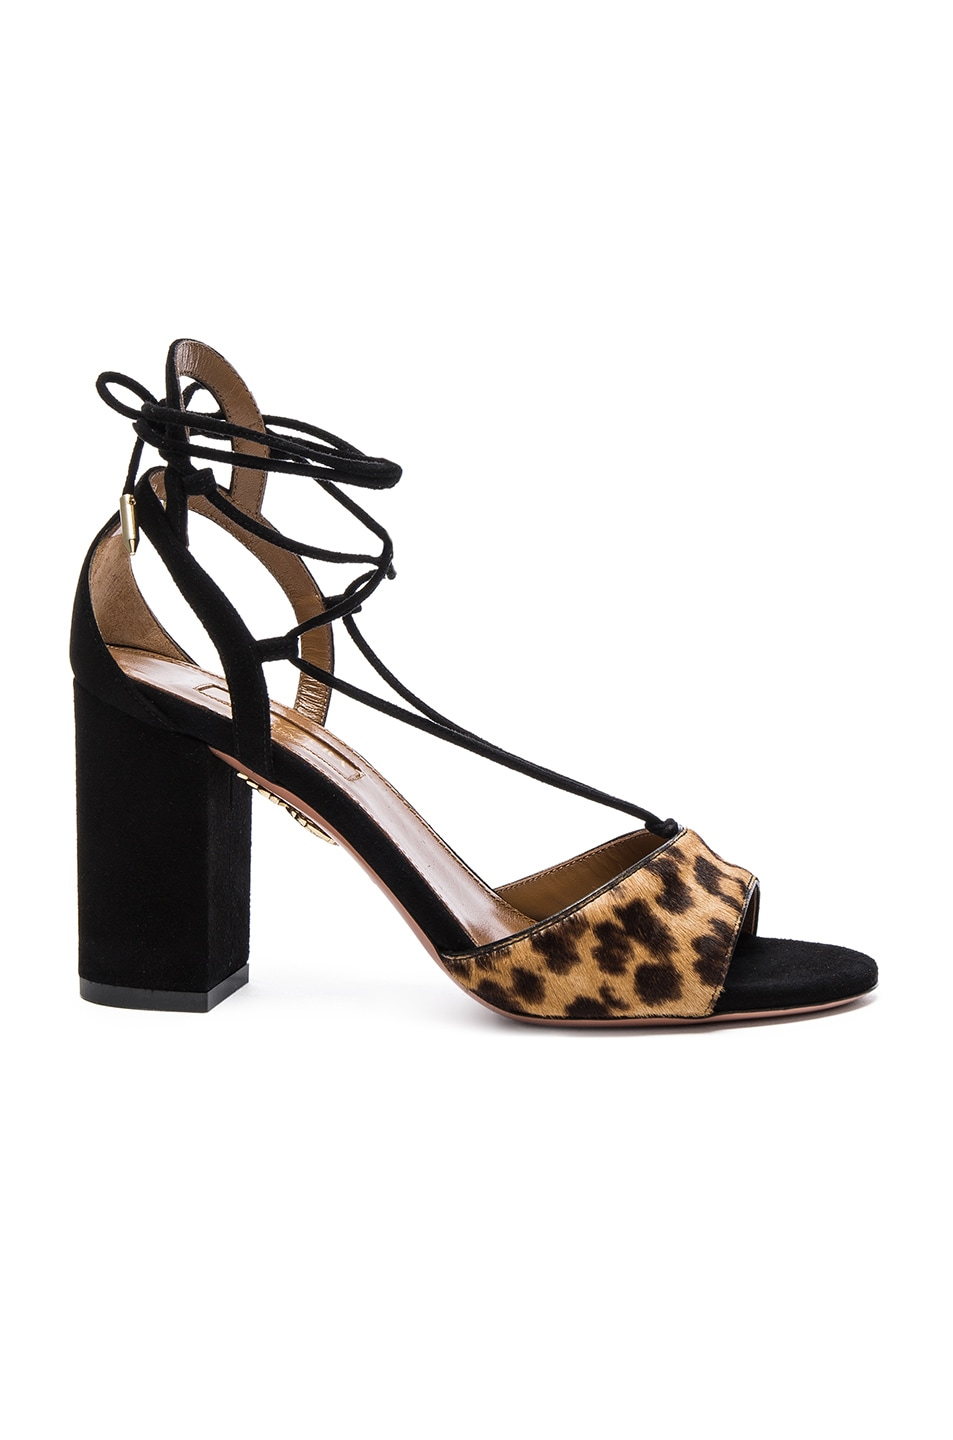 Image 1 of Aquazzura Suede Austin Sandals in Caramel Leopard